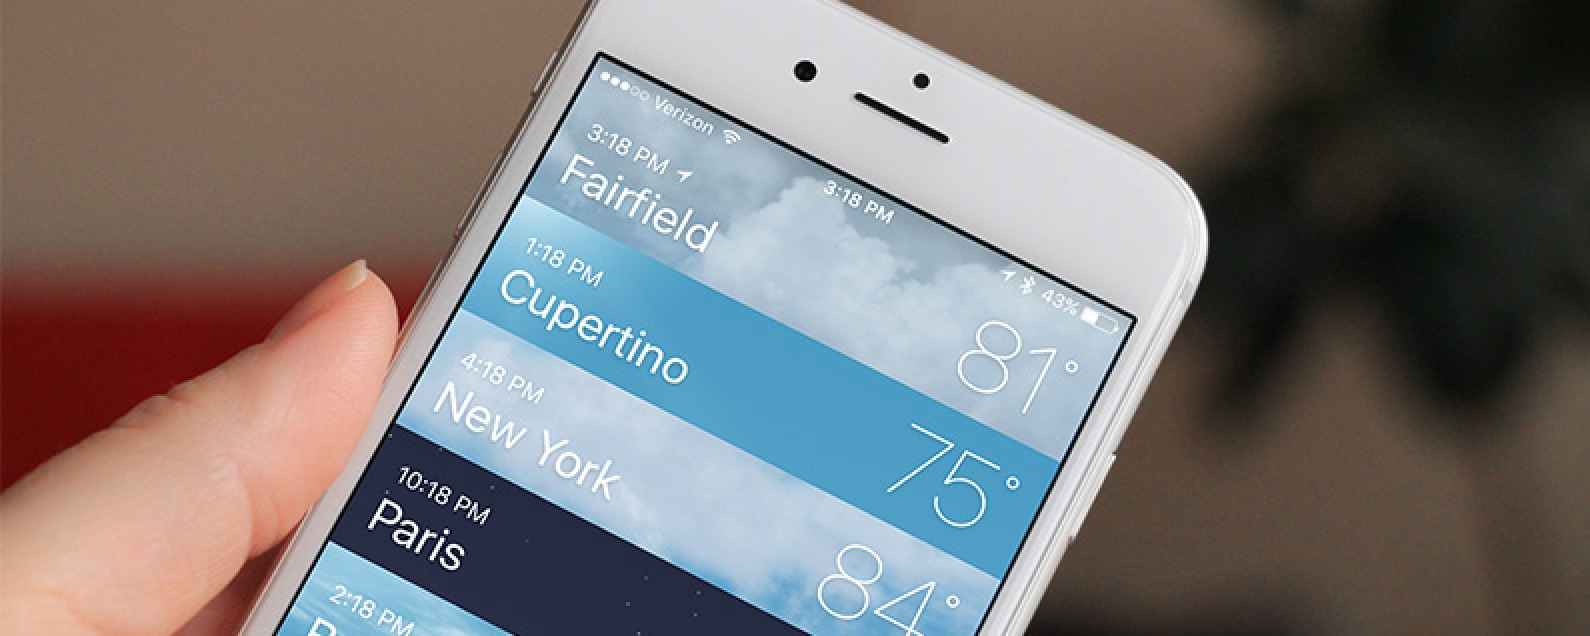 How to Add and Delete Locations in the Weather app on iPhone